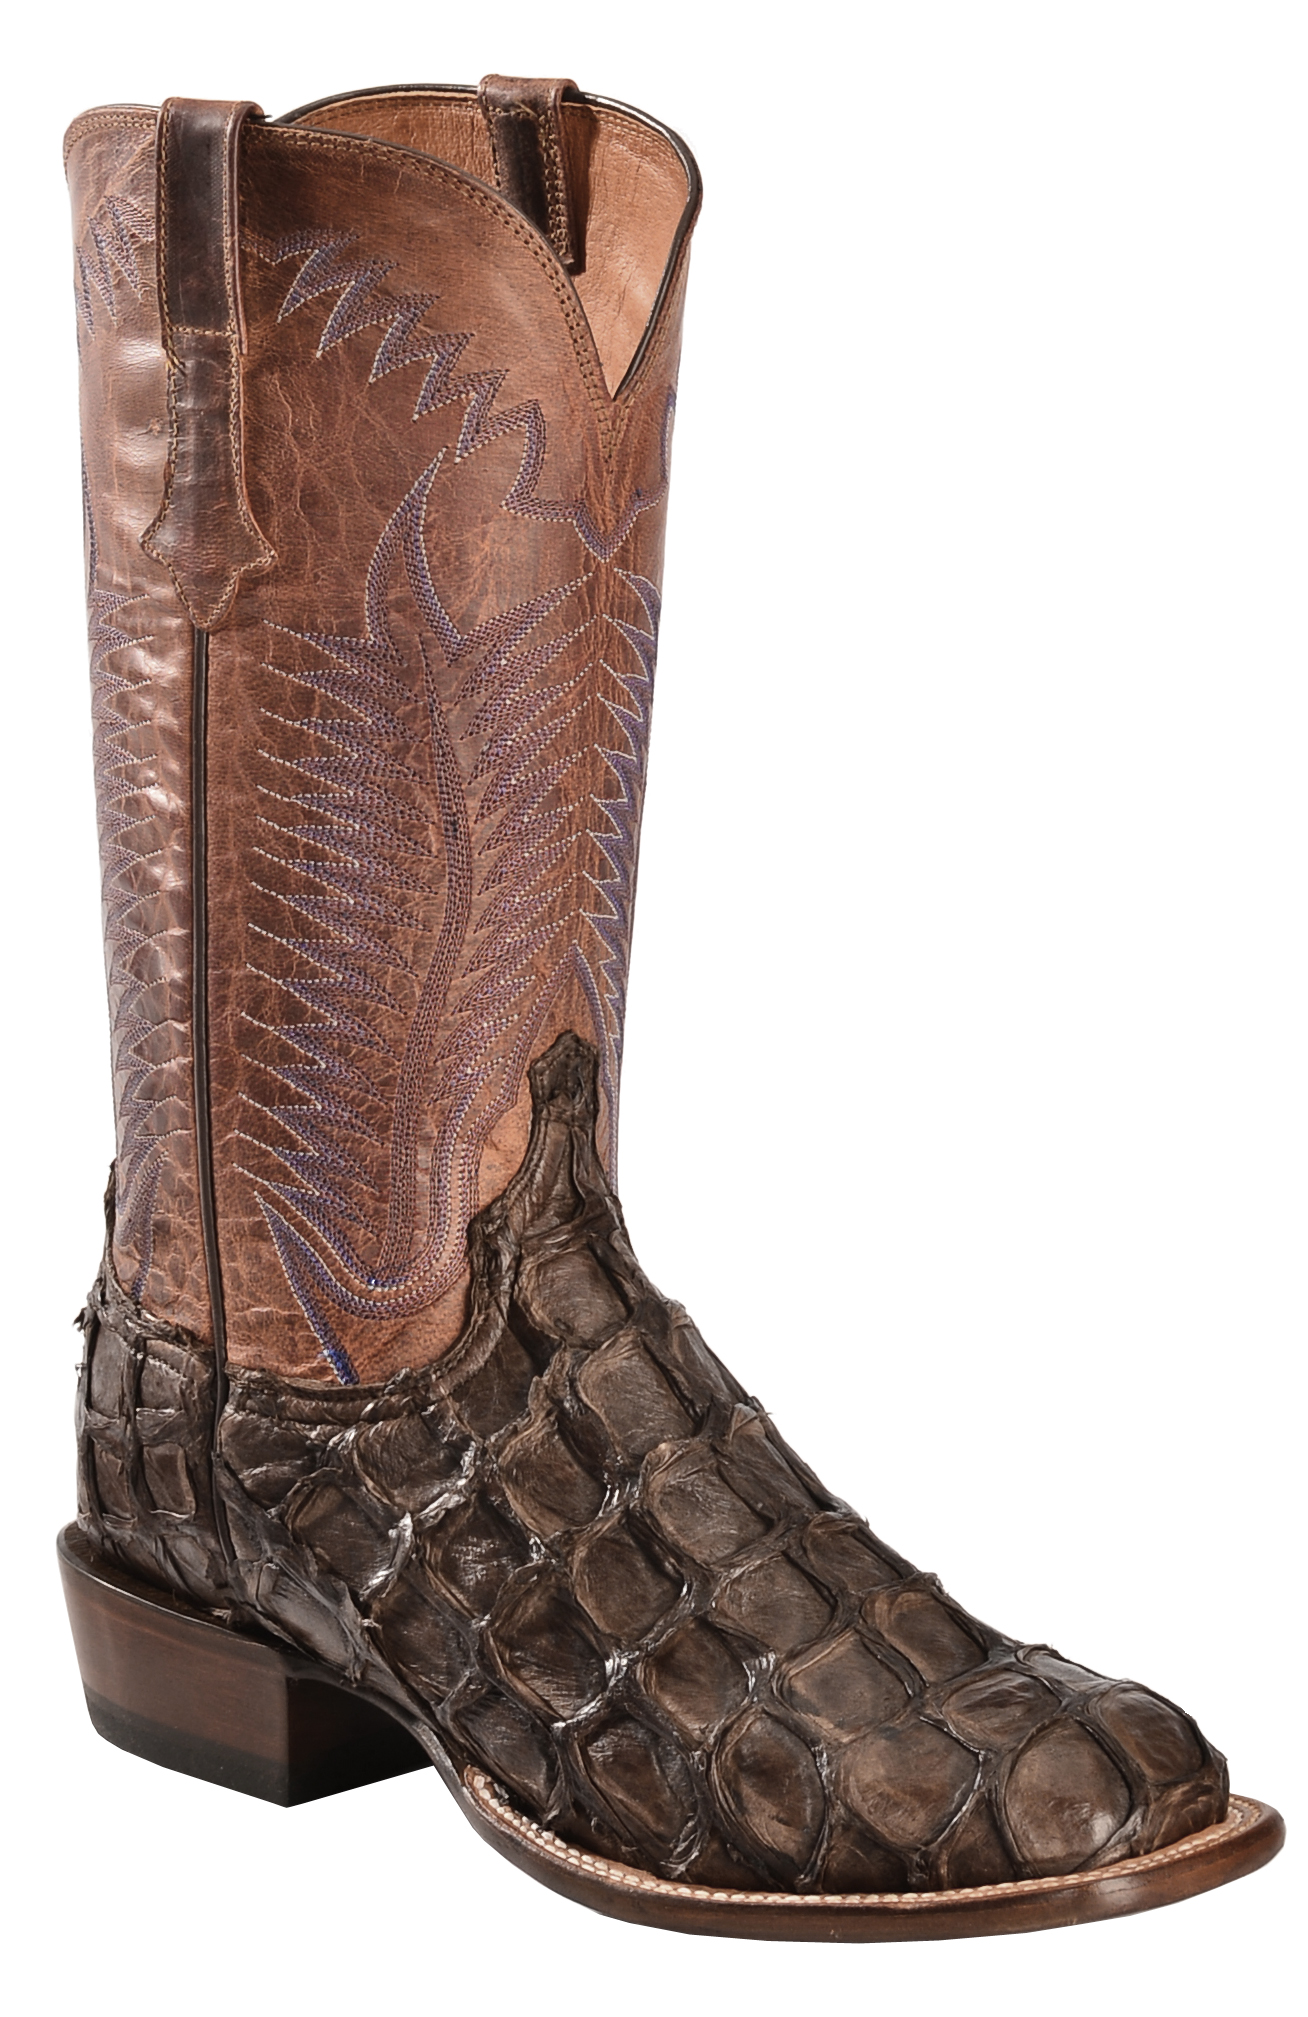 Lucchese Mens Antique Italian Red Giant Gator Boots